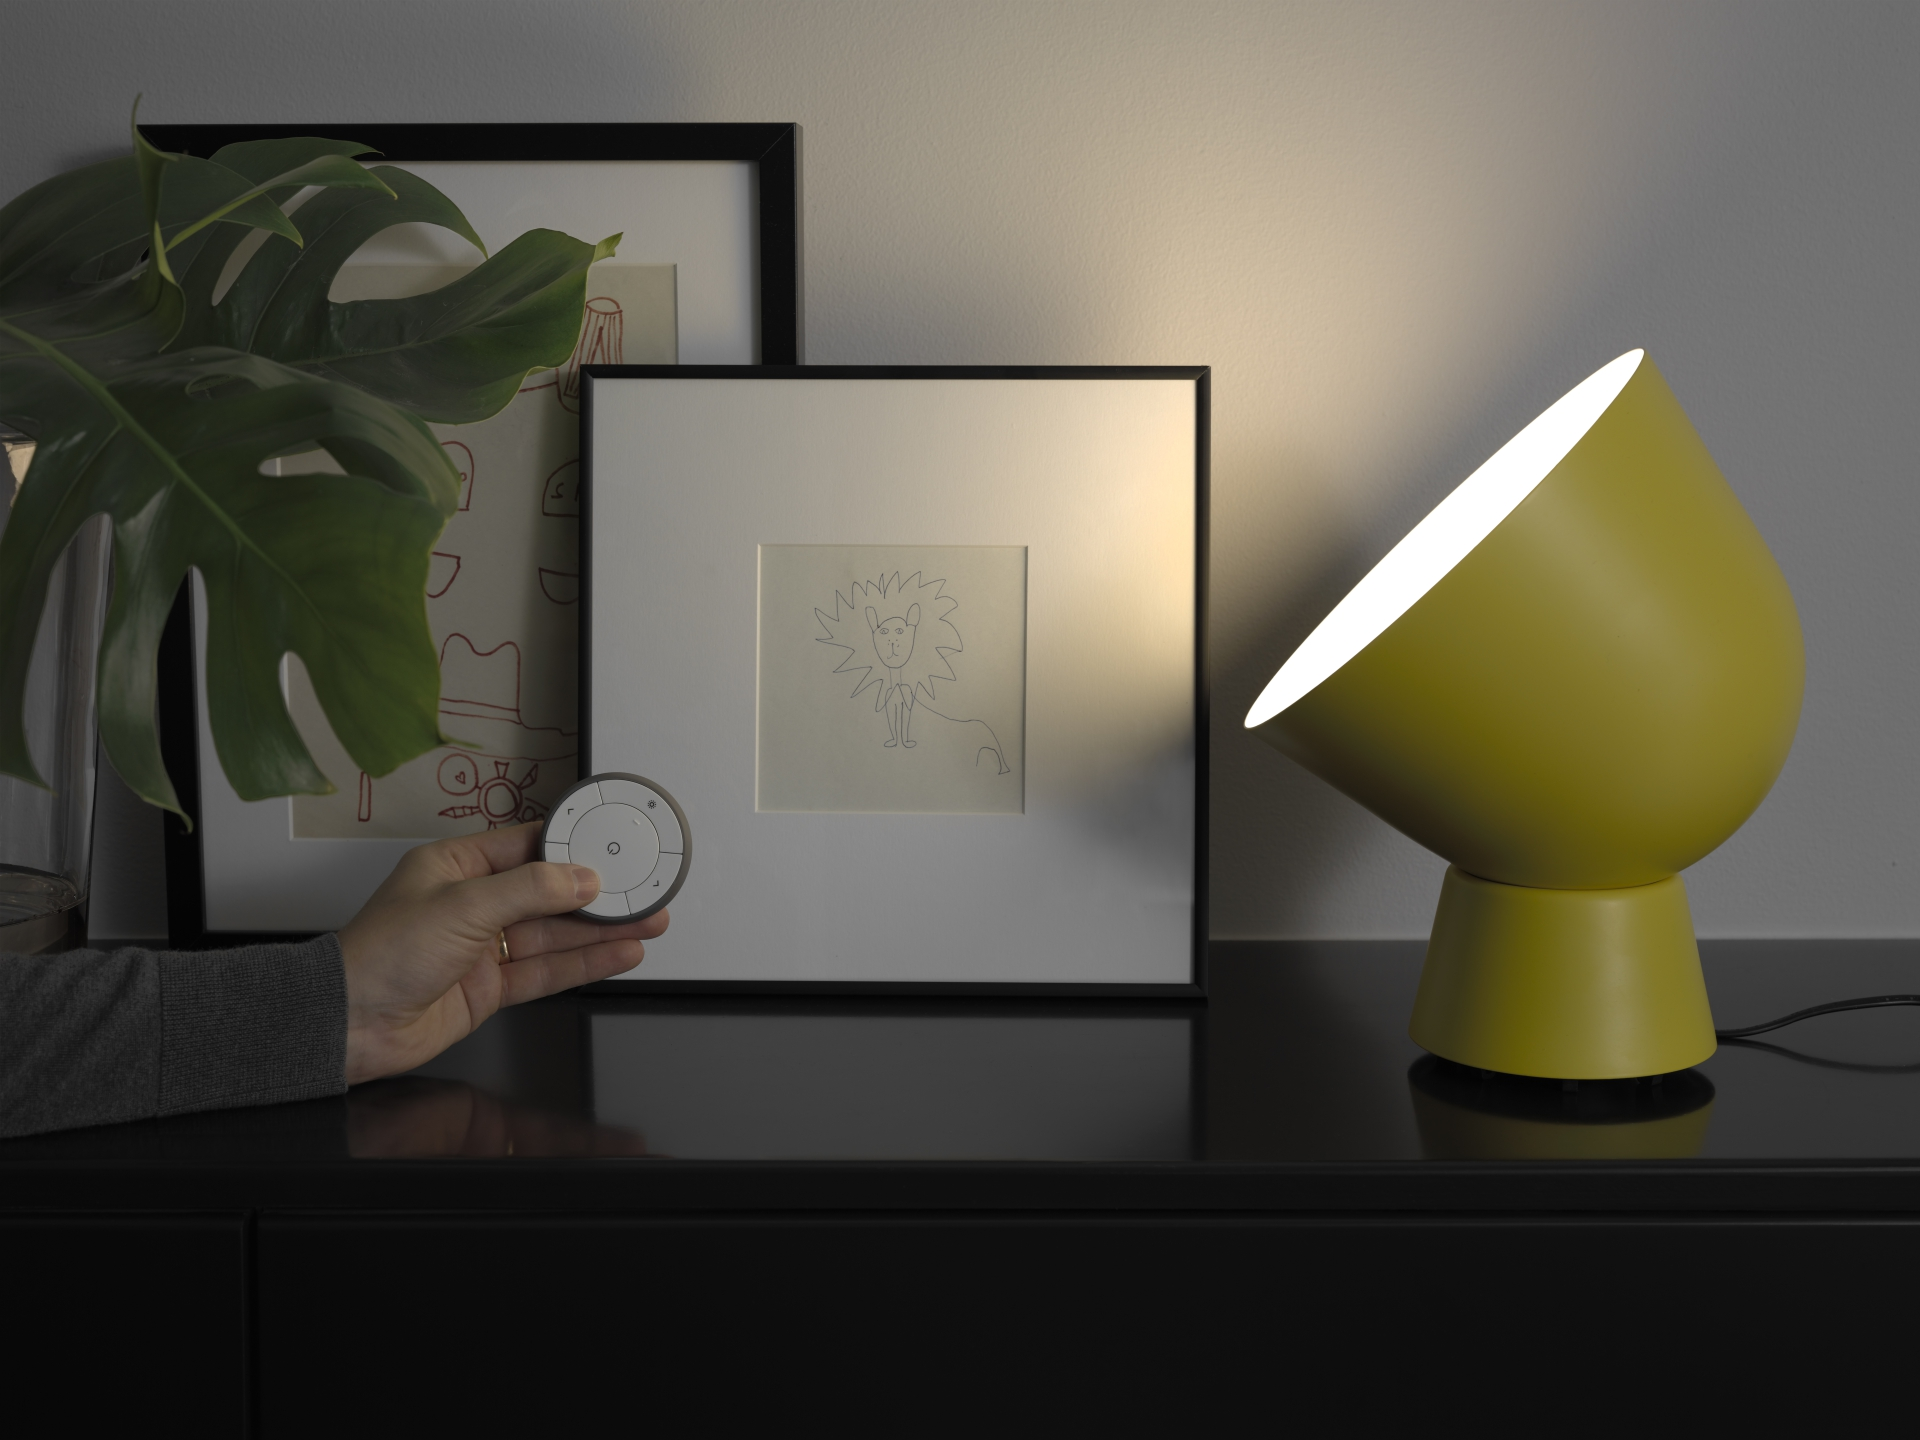 ikea_smart-lighting-3